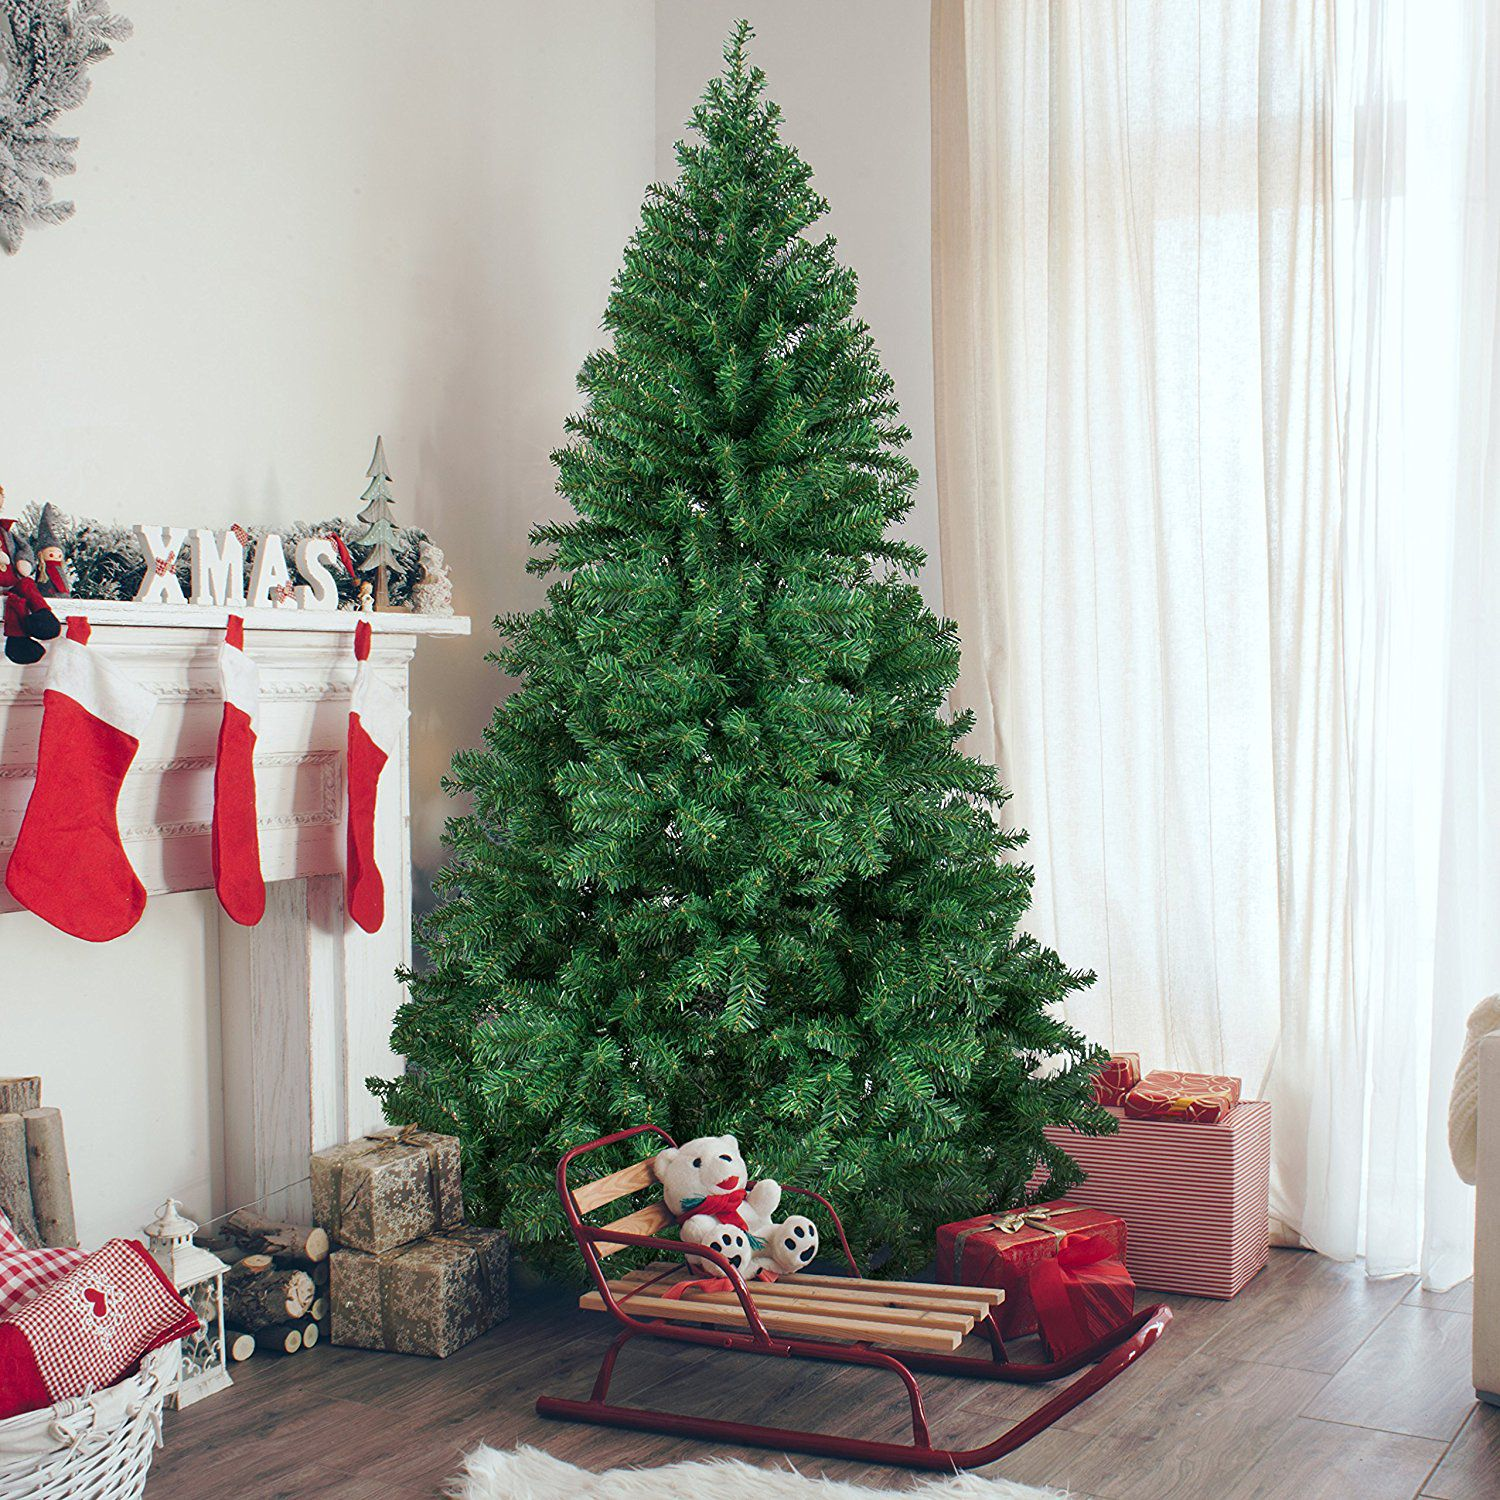 The 10 Best Artificial Christmas Trees to Buy in 2018